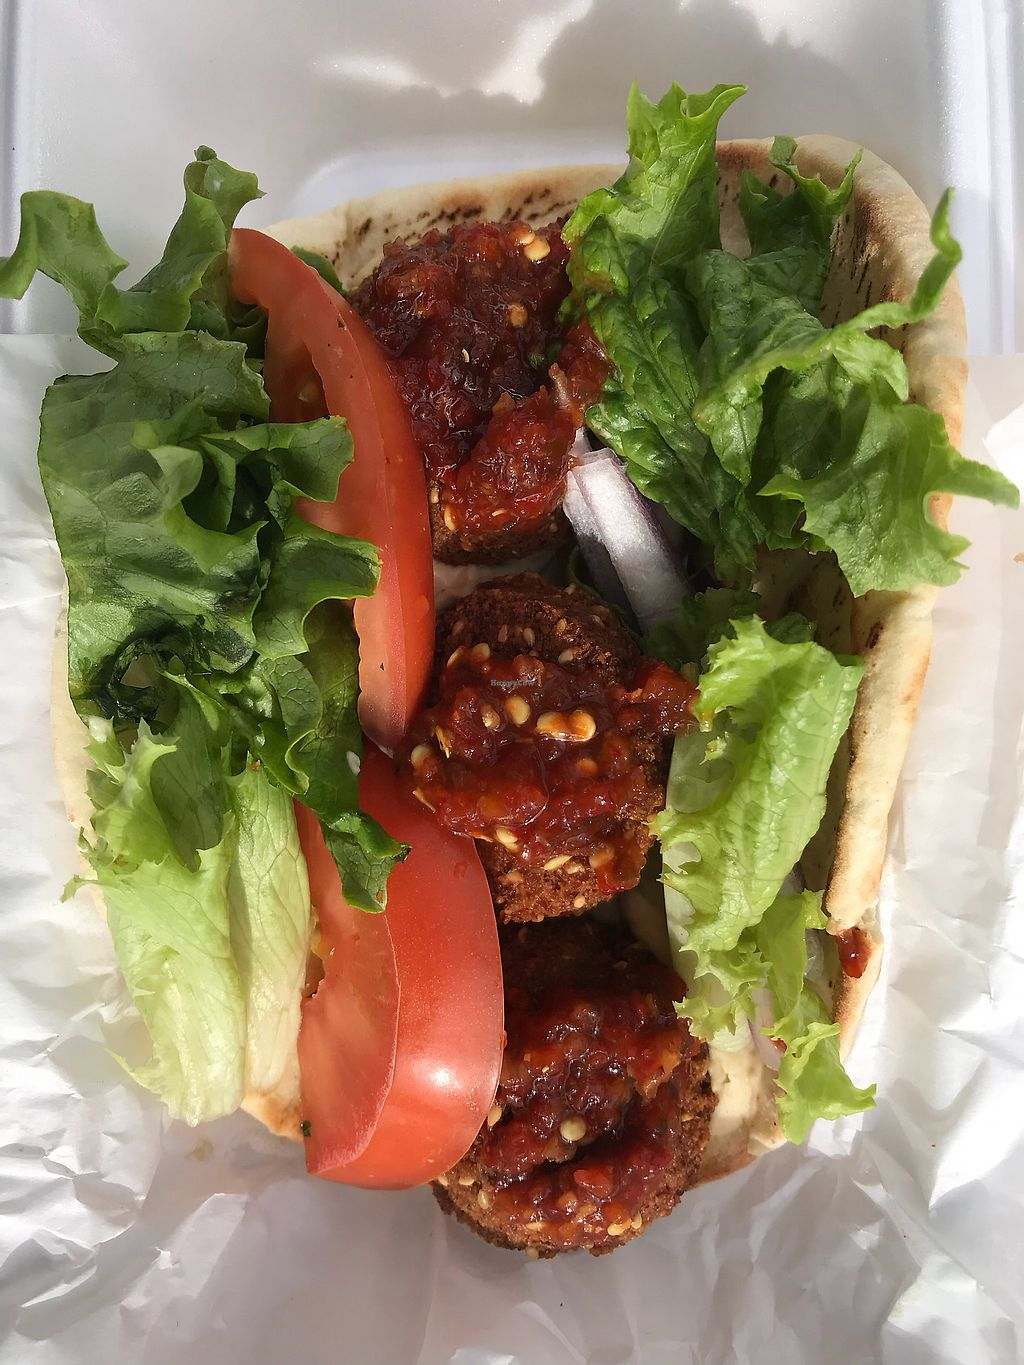 """Photo of Zayna Mediterranean  by <a href=""""/members/profile/OldPuebloVegan"""">OldPuebloVegan</a> <br/>I like spicy, so I add lots of their wonderful Shat-tah (Red Chili) Sauce on top <br/> March 16, 2018  - <a href='/contact/abuse/image/36129/371539'>Report</a>"""